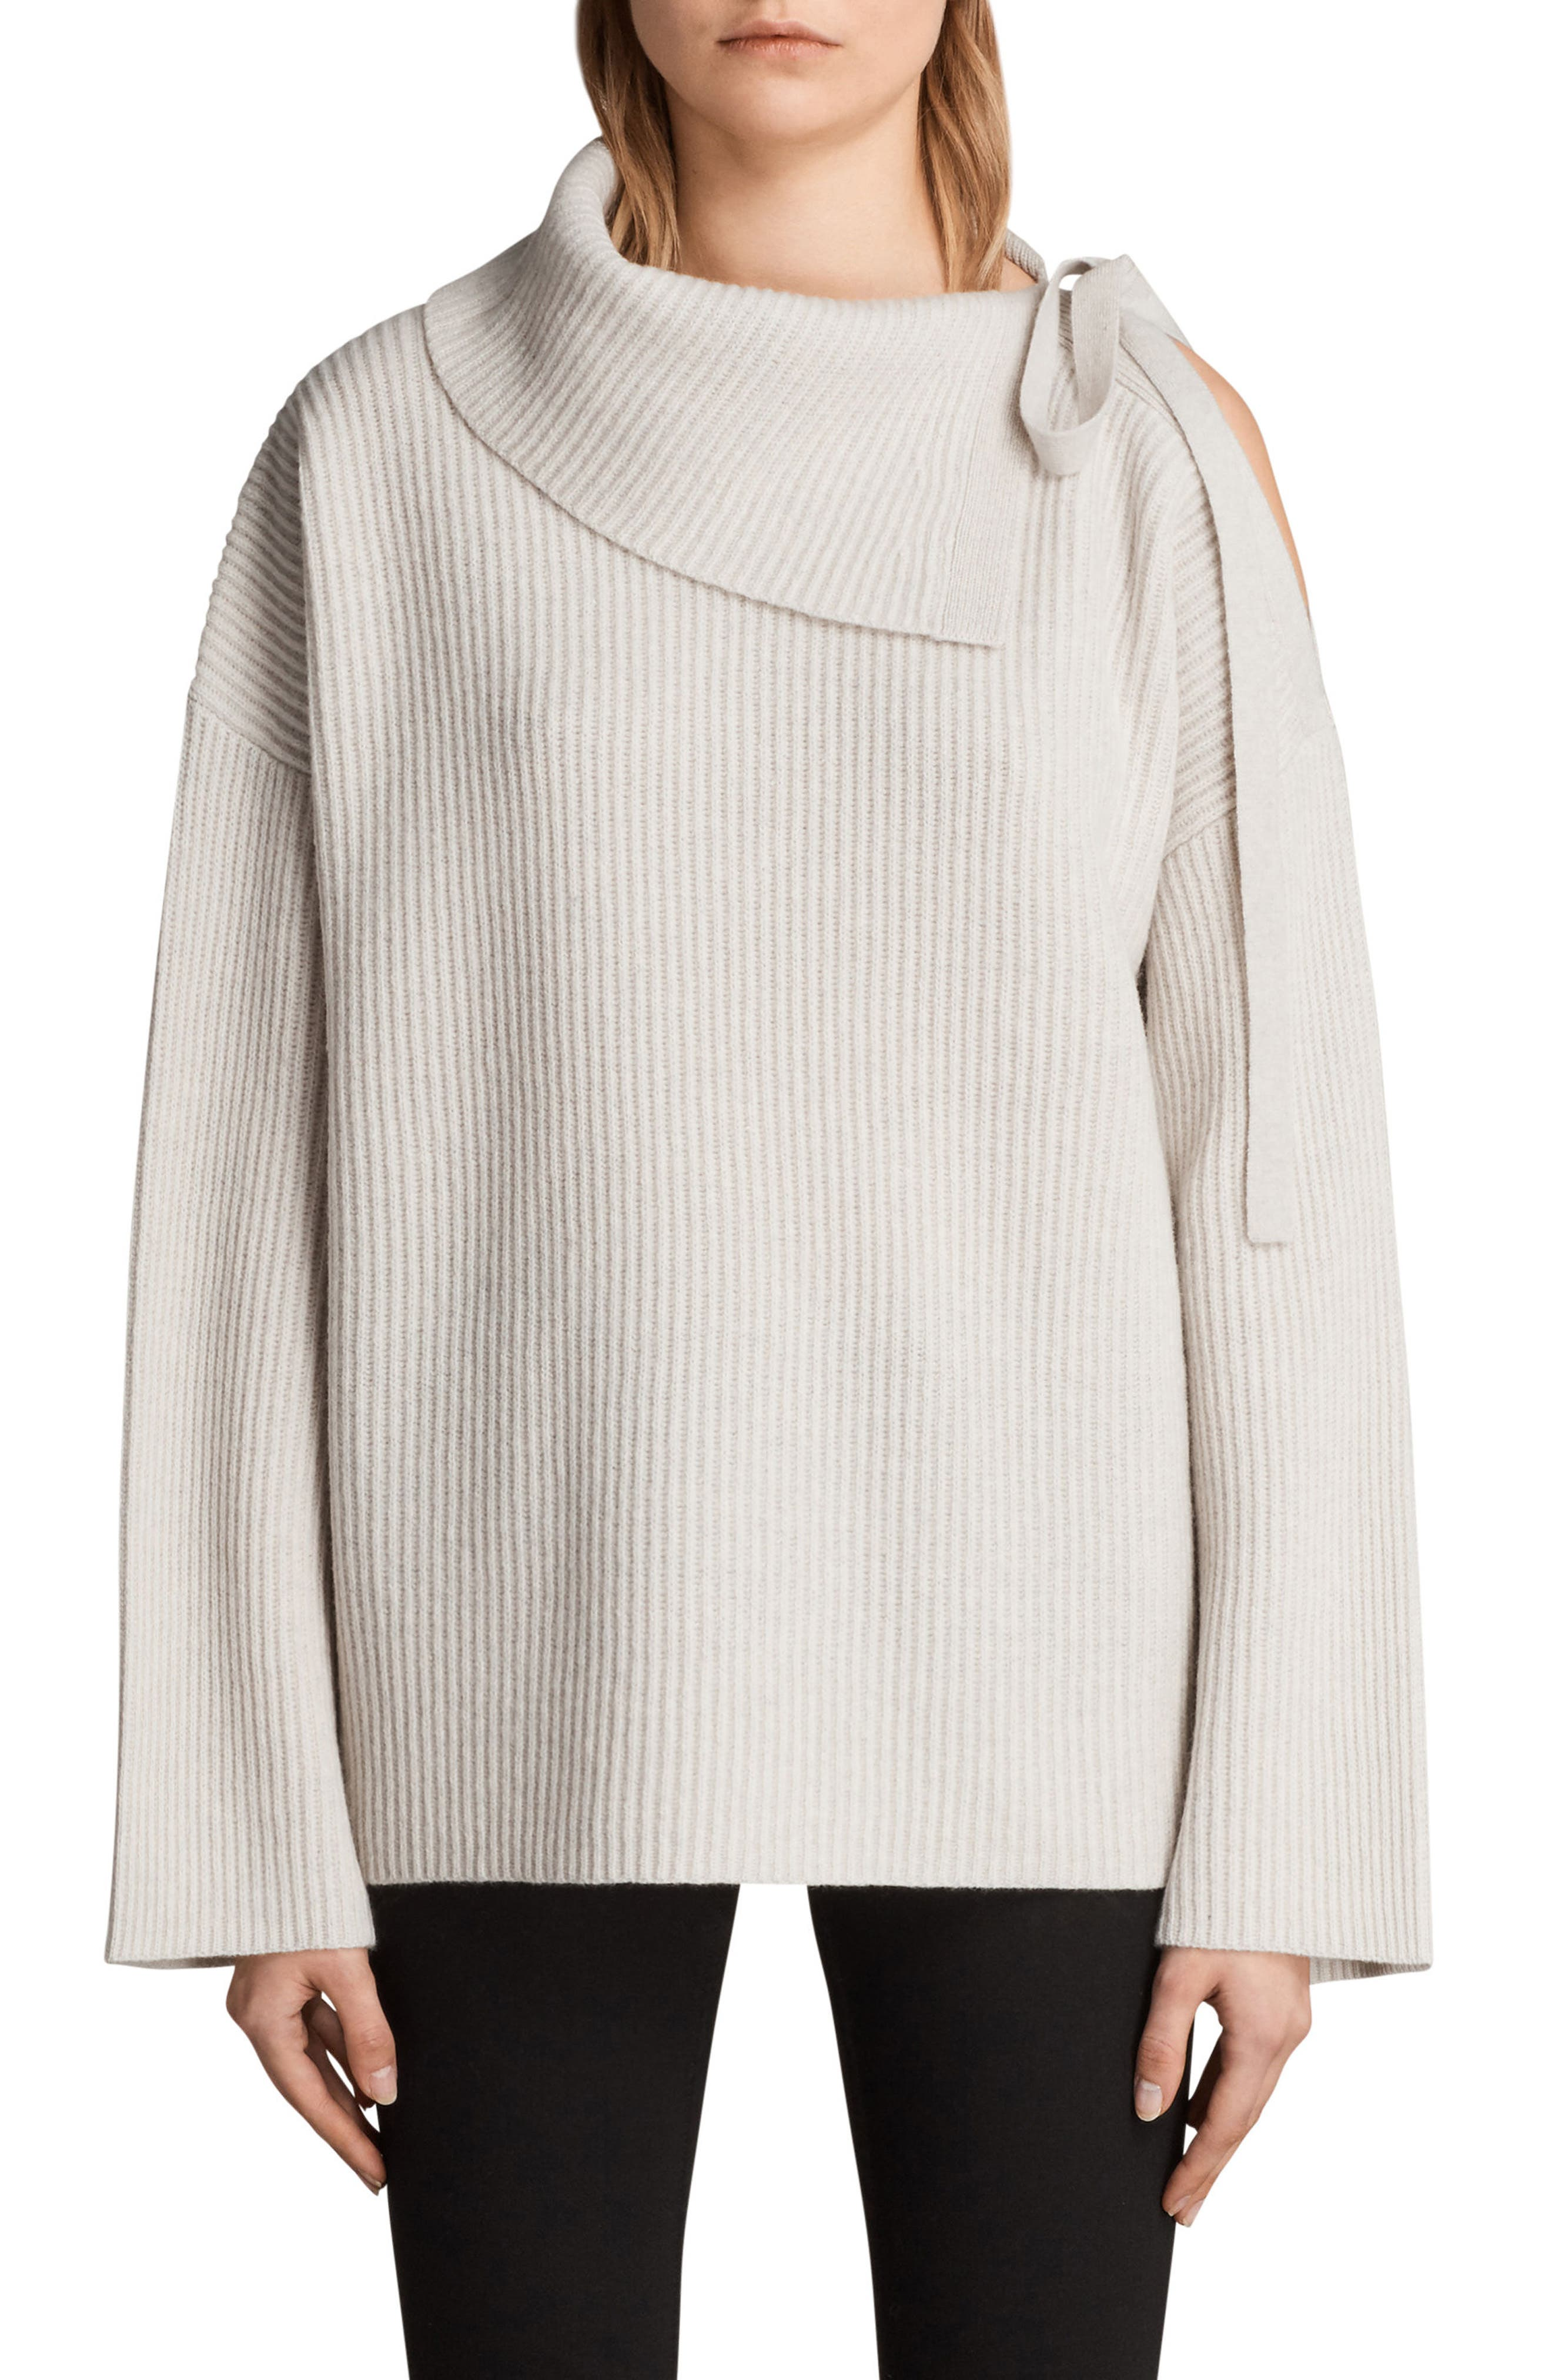 ALLSAINTS Sura Tie Neck Sweater, Main, color, 252